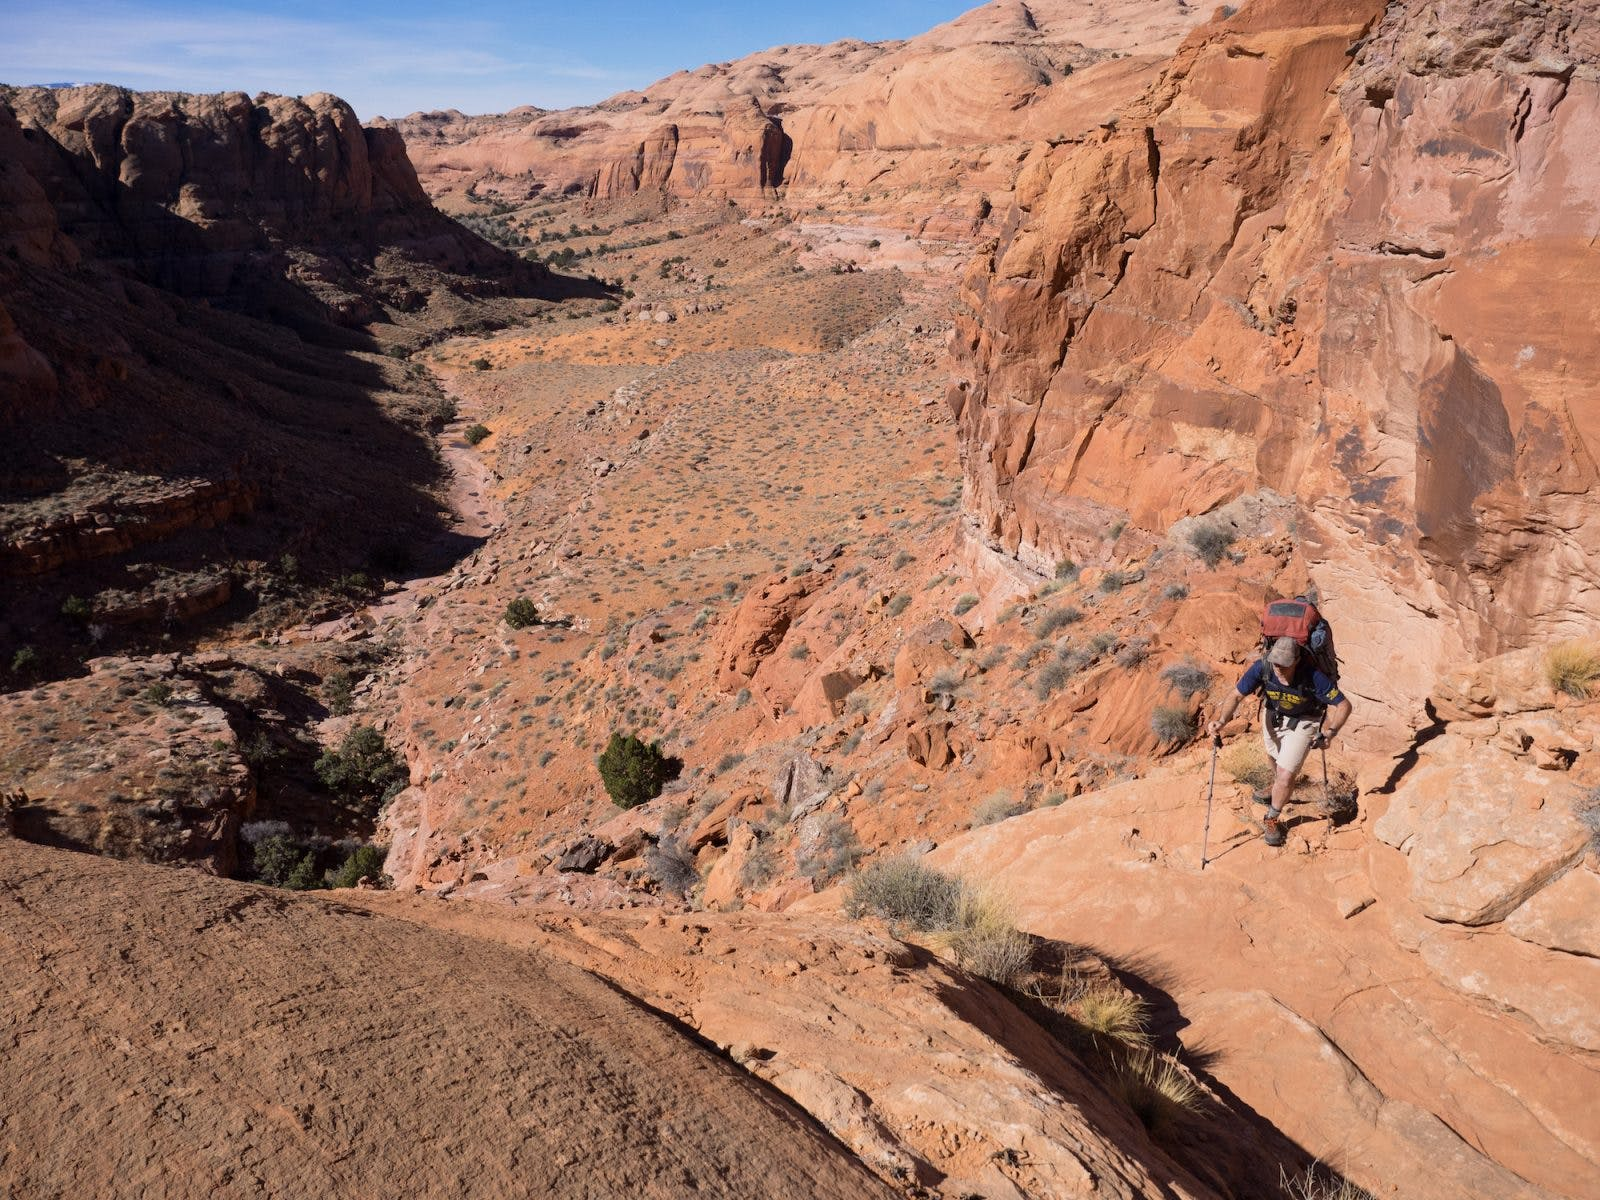 The old cowboy route was still intact allowing us to escape to the sea of domes above.